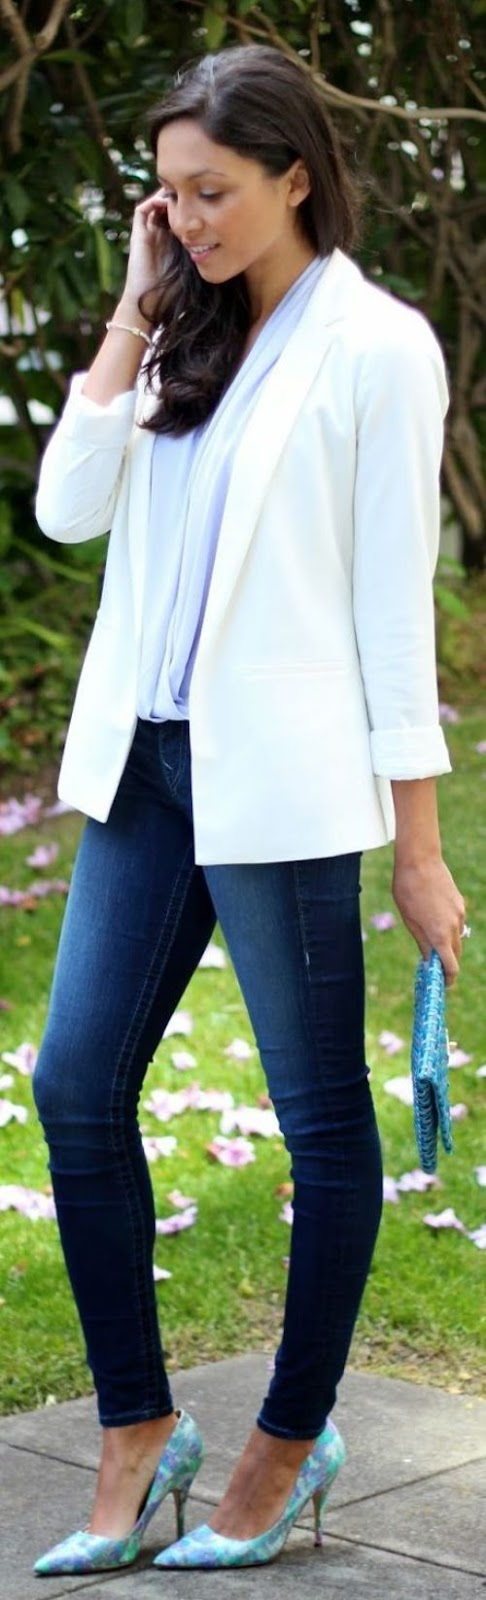 street stye: elegant white tuxedo jacket with skinny jeans and blue heels